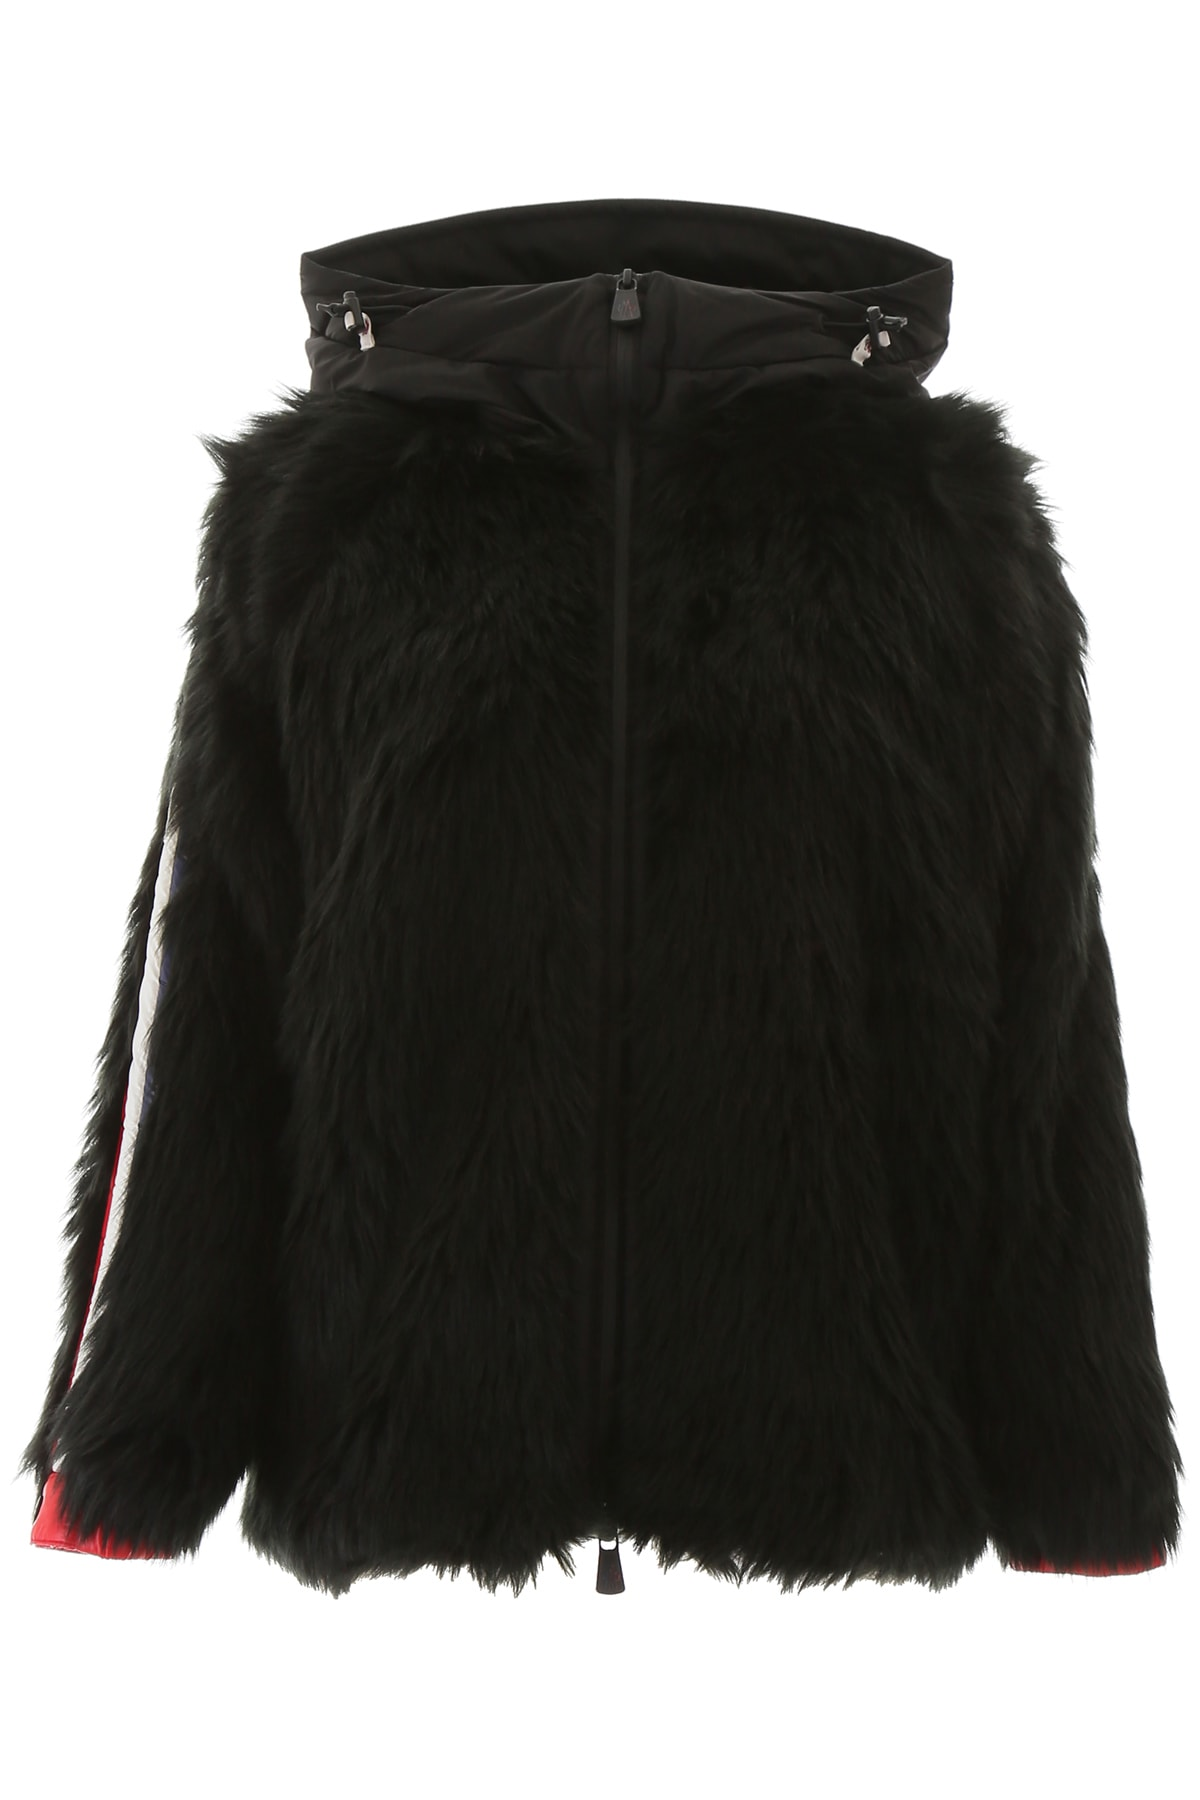 Moncler Grenoble Bigfoot Jacket